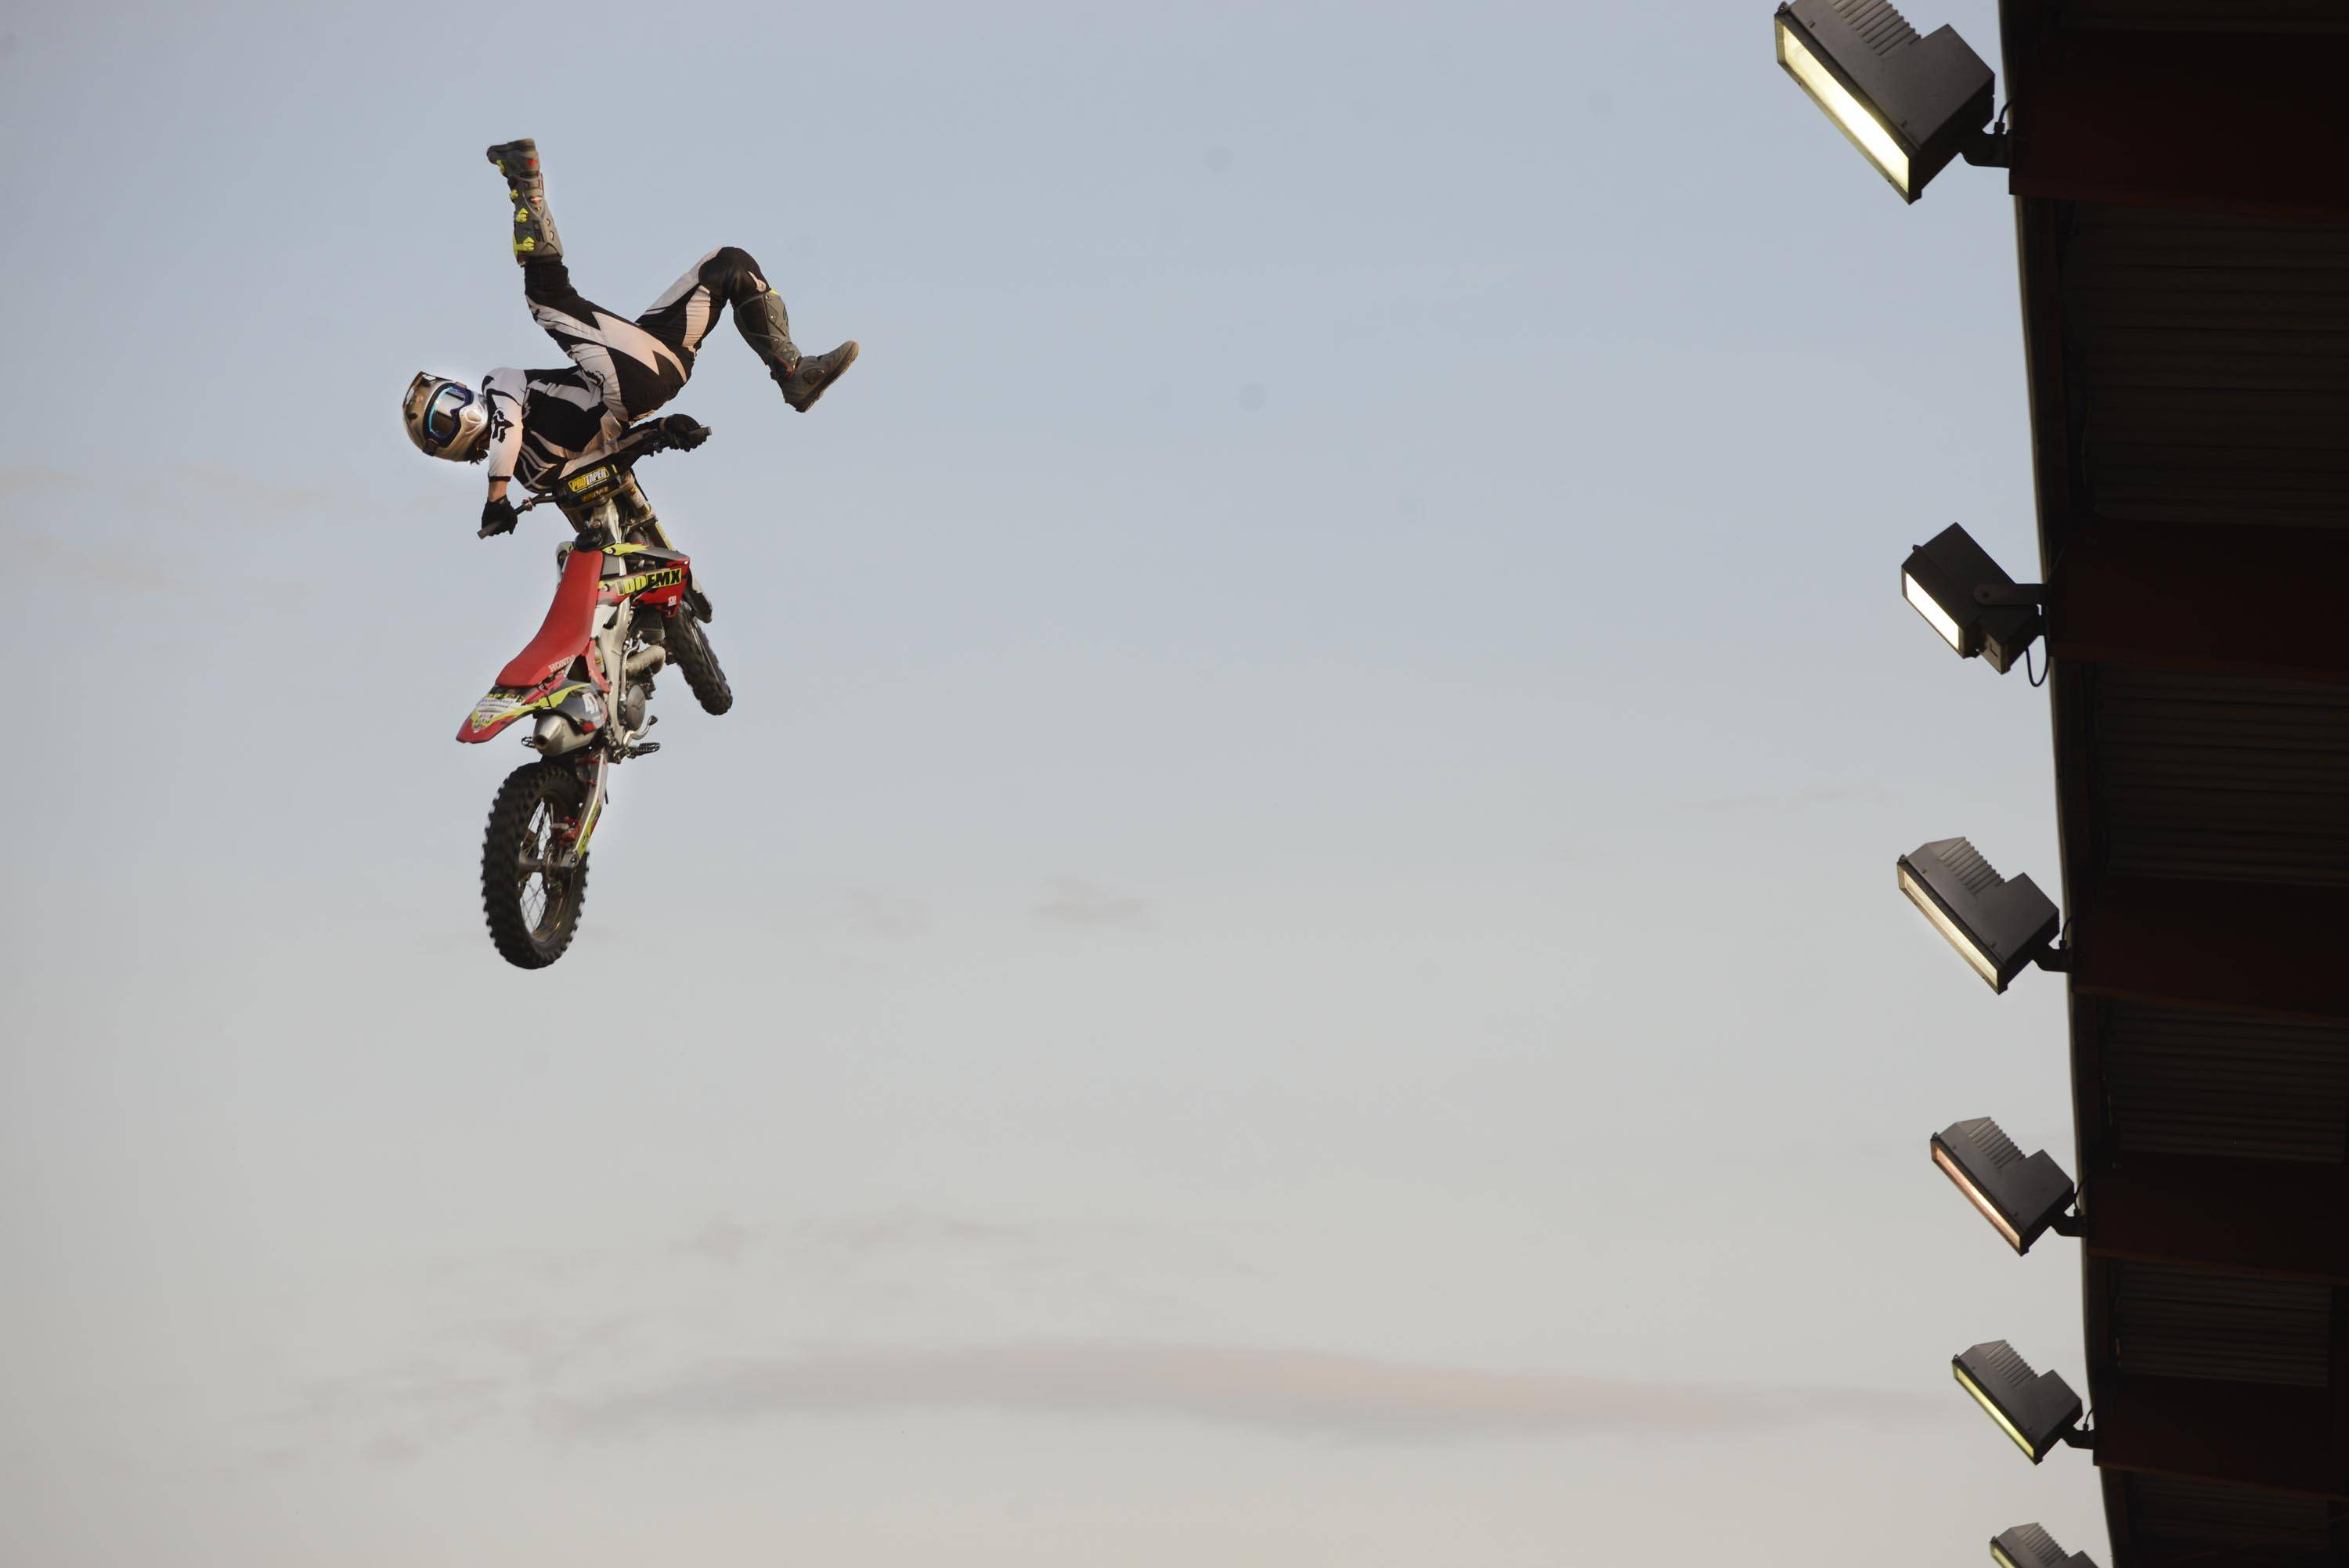 Austin Drummond, a professional freestyle motocross rider from Atlanta, flies past the grandstand lights Thursday night at the Freestyle Motocross Stunt Show at the Kane County Fair in St. Charles.